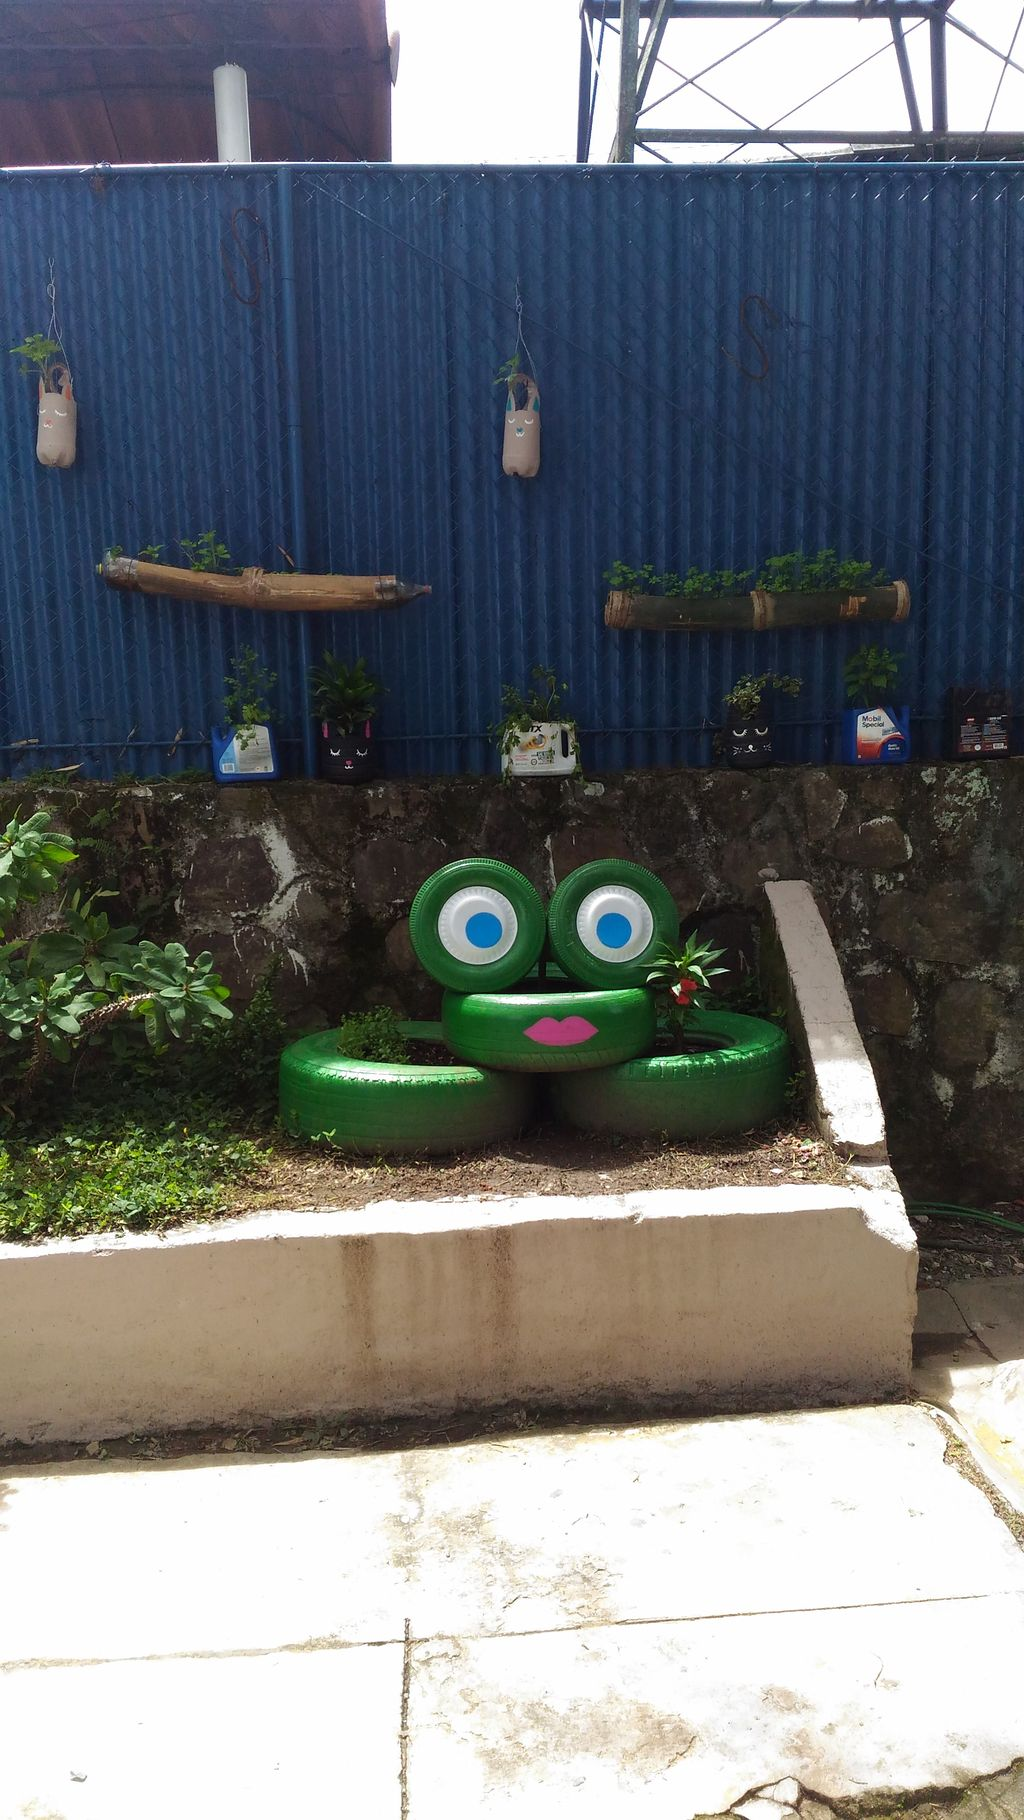 Hey, Guess What: El Salvador Is Actually Pretty Great! - Part 1 26